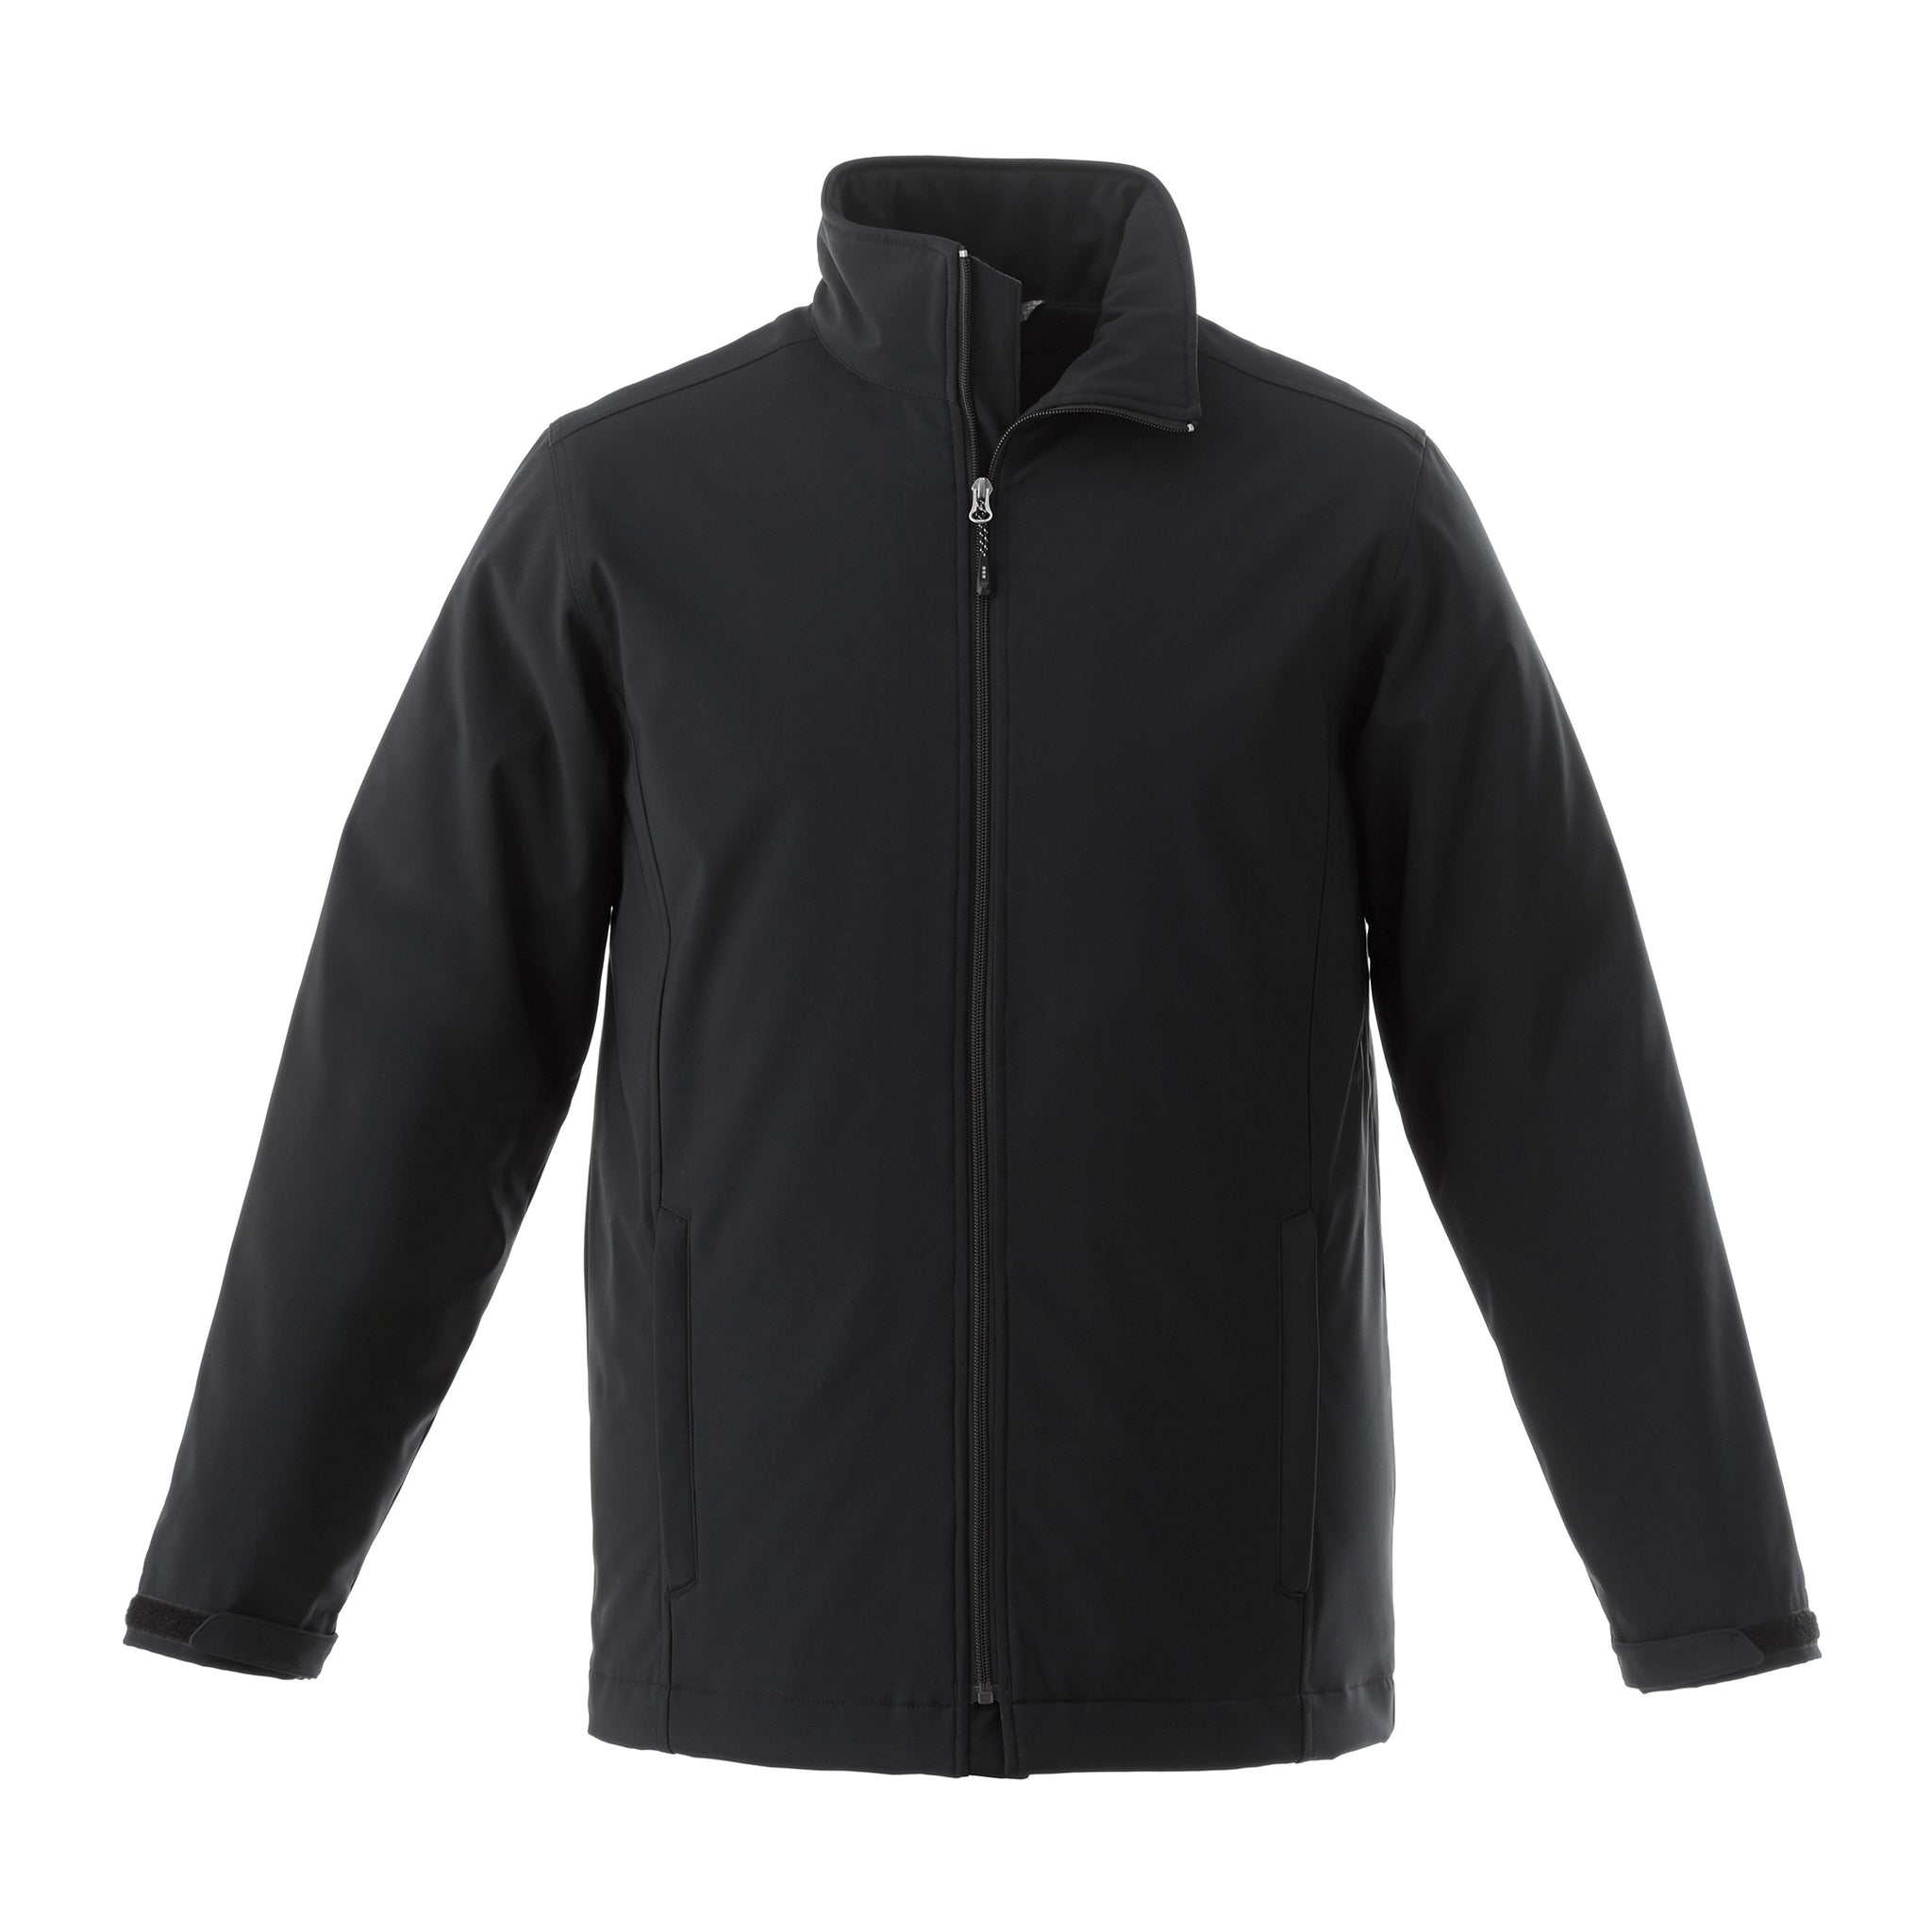 ELEVATE YOUTH LAWSON INSULATED SOFT SHELL